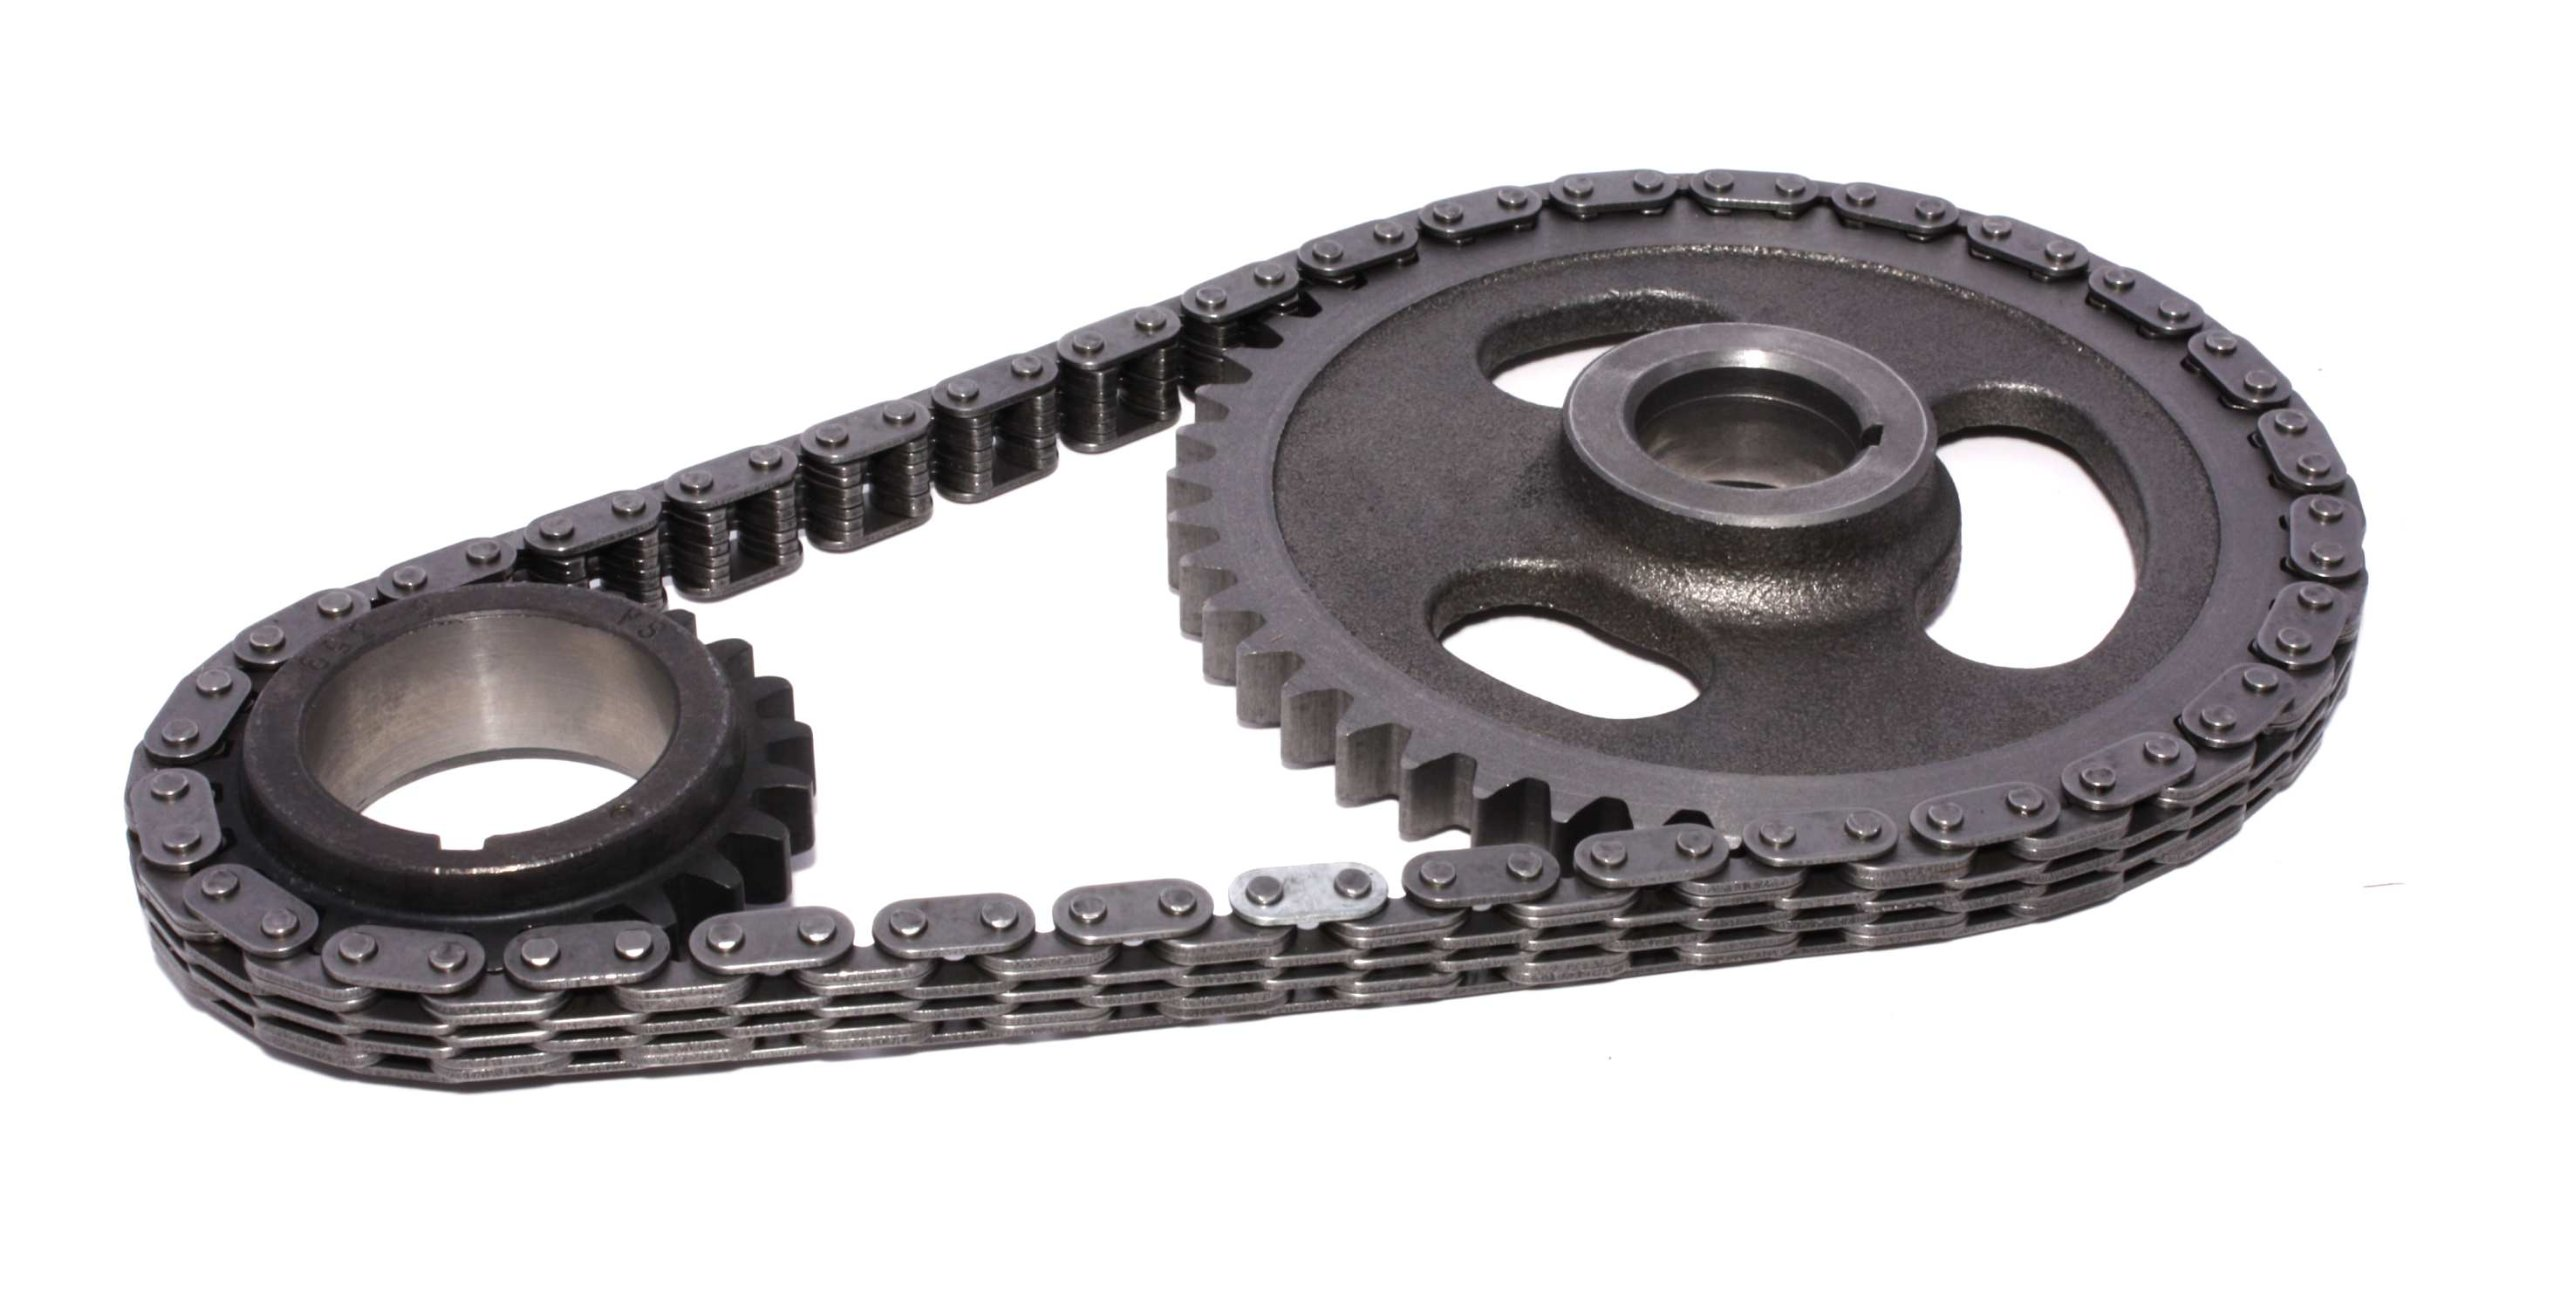 Competition Cams 3203 High Energy Timing Chain Set for Small Block Chrysler by Comp Cams